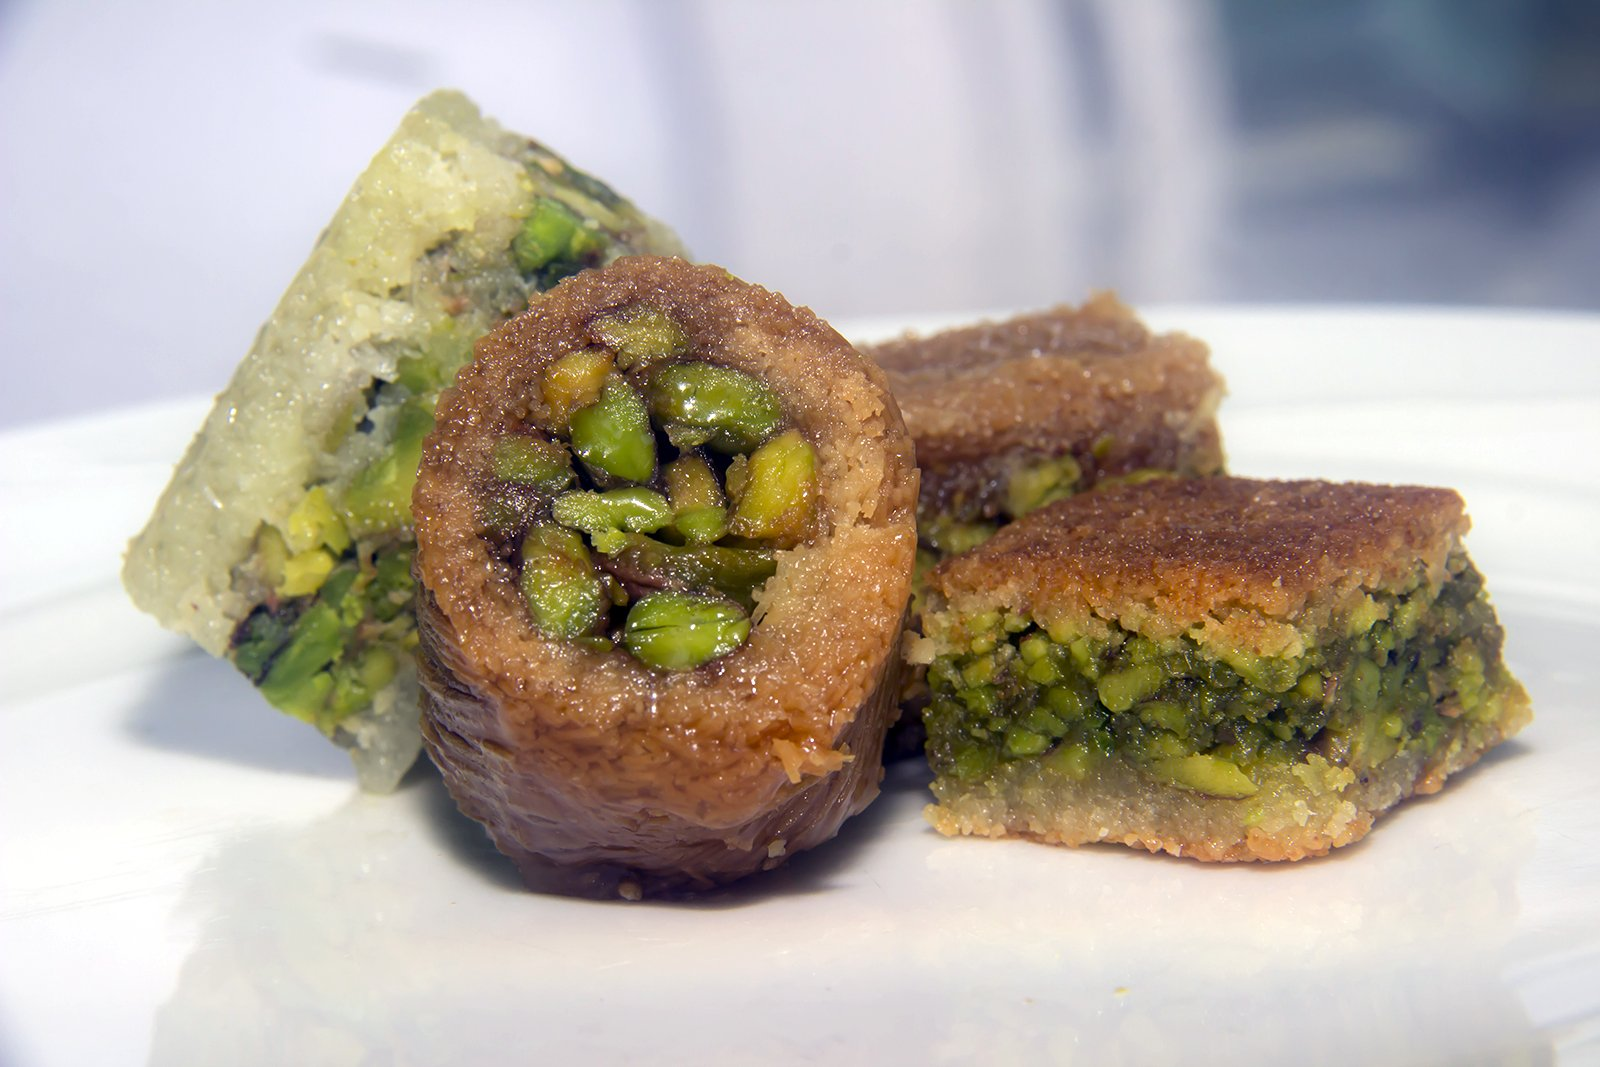 Assorted Baklava Sweets w/Pistachio (20 Oz) : 23-25 Pcs small cut - Imported Fresh from Lebanon - THE ORIGINAL Recipe From Middle East - Assorted Baklava Pastry Pistachios (20 Oz) by Hallab 1881 (Image #5)